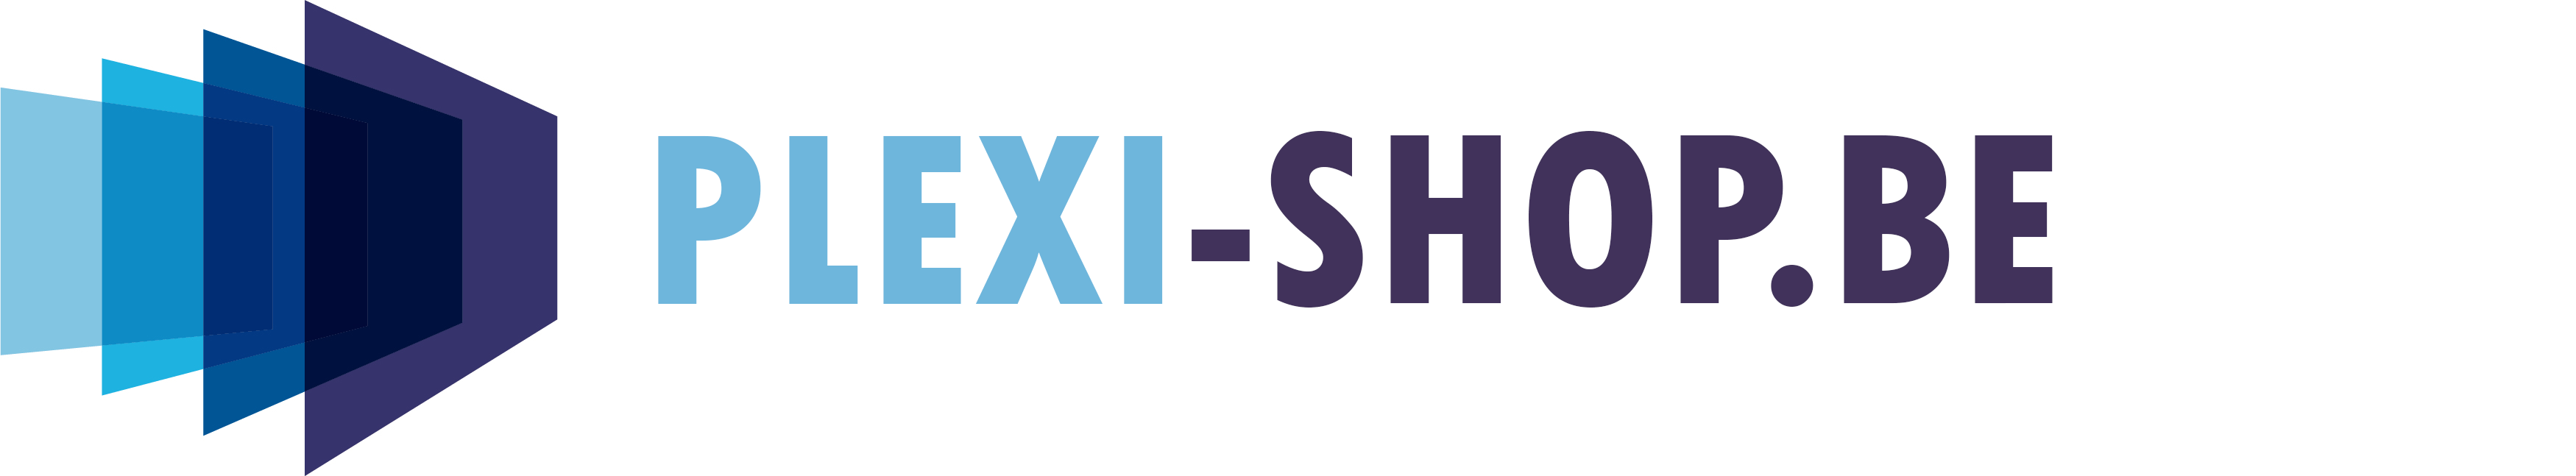 Logo Plexishop BE